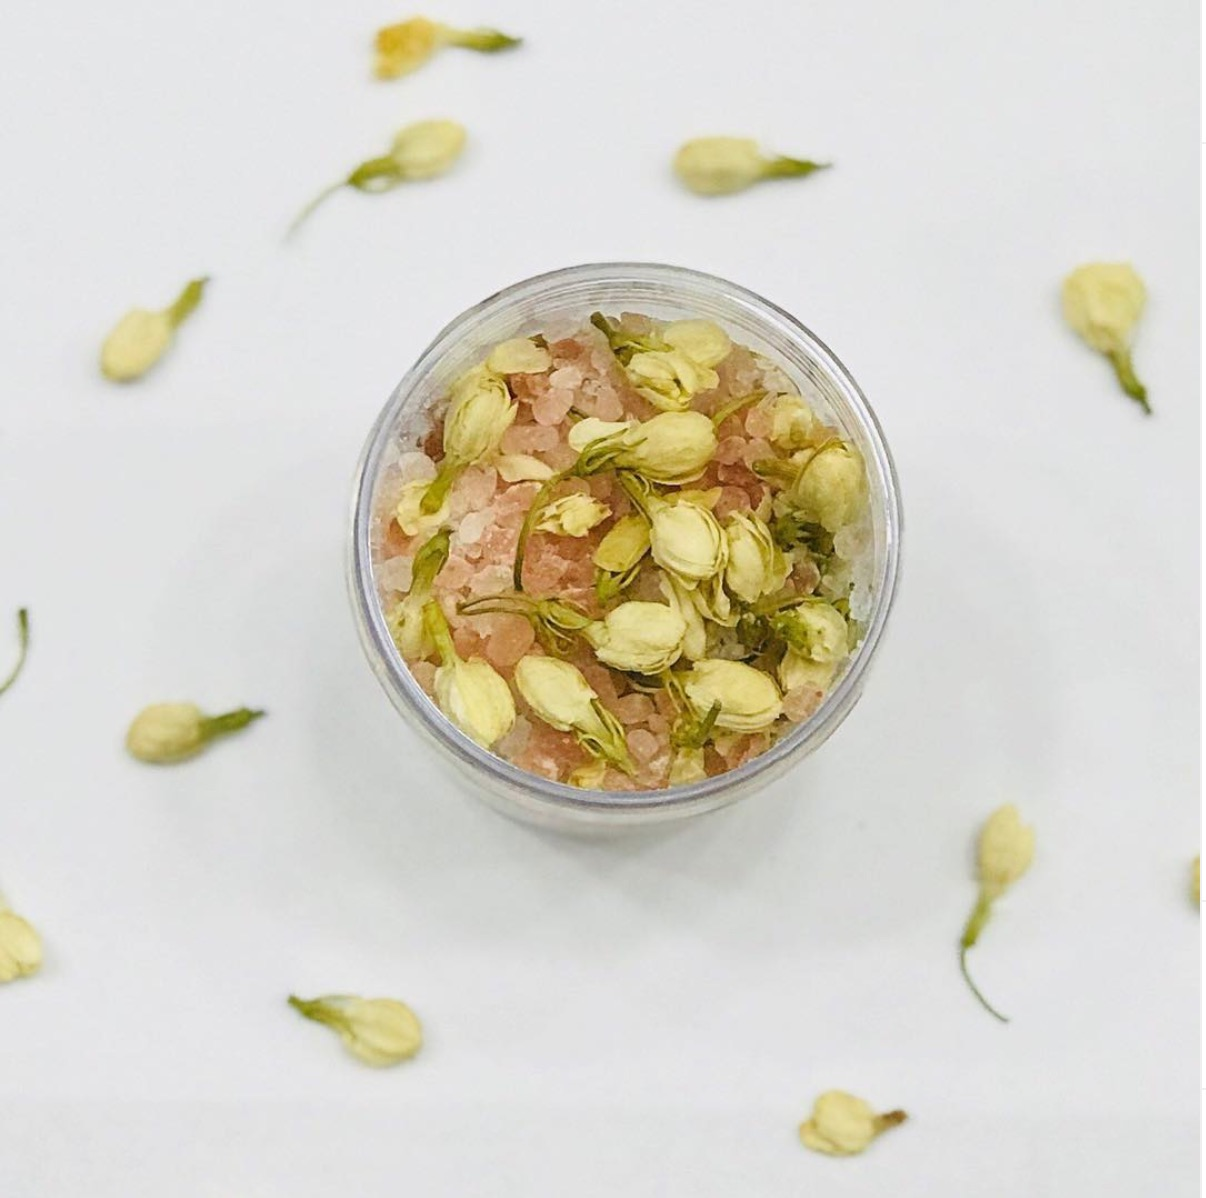 You can make Ylang Ylang bath salts, pop in the bath - or as a nice scrub!